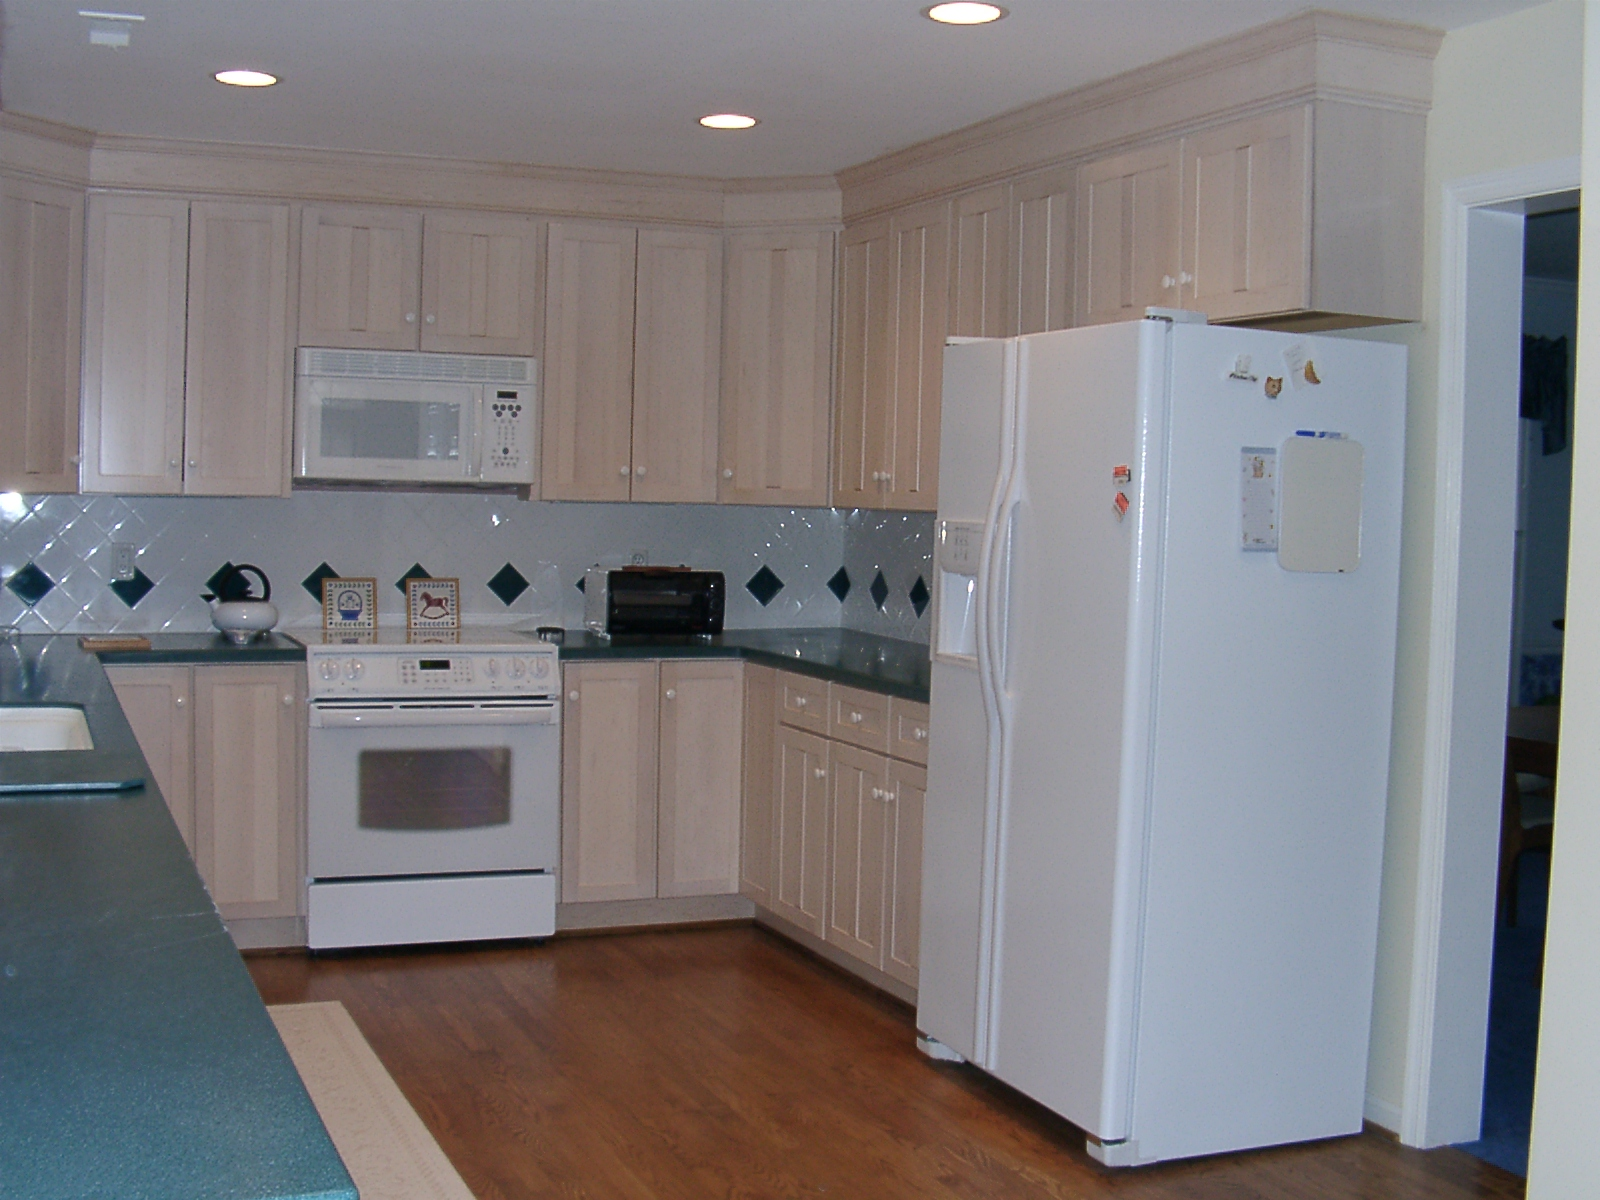 Cabinet colors suggestions granite laminate corian for Laminate colors for kitchen cabinets